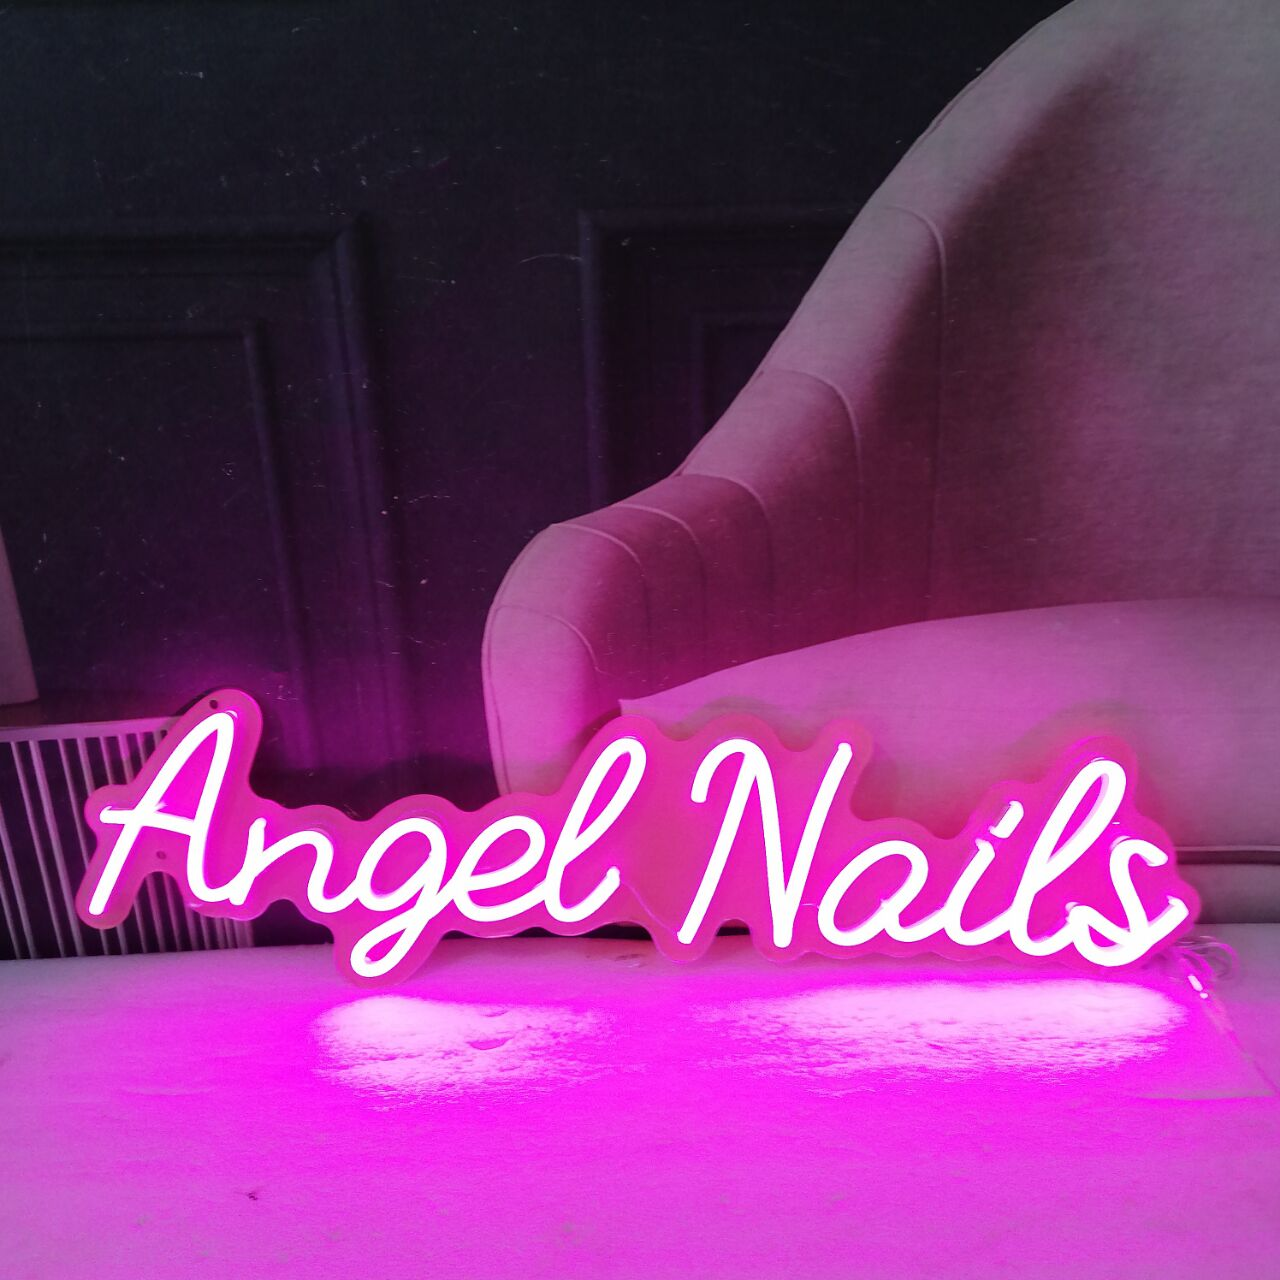 Personalized Neon Signs Wall Hanging Decor for Business Logo Slogan Barber Salon Led Neon Sign Nail Shop Neon Sign Board